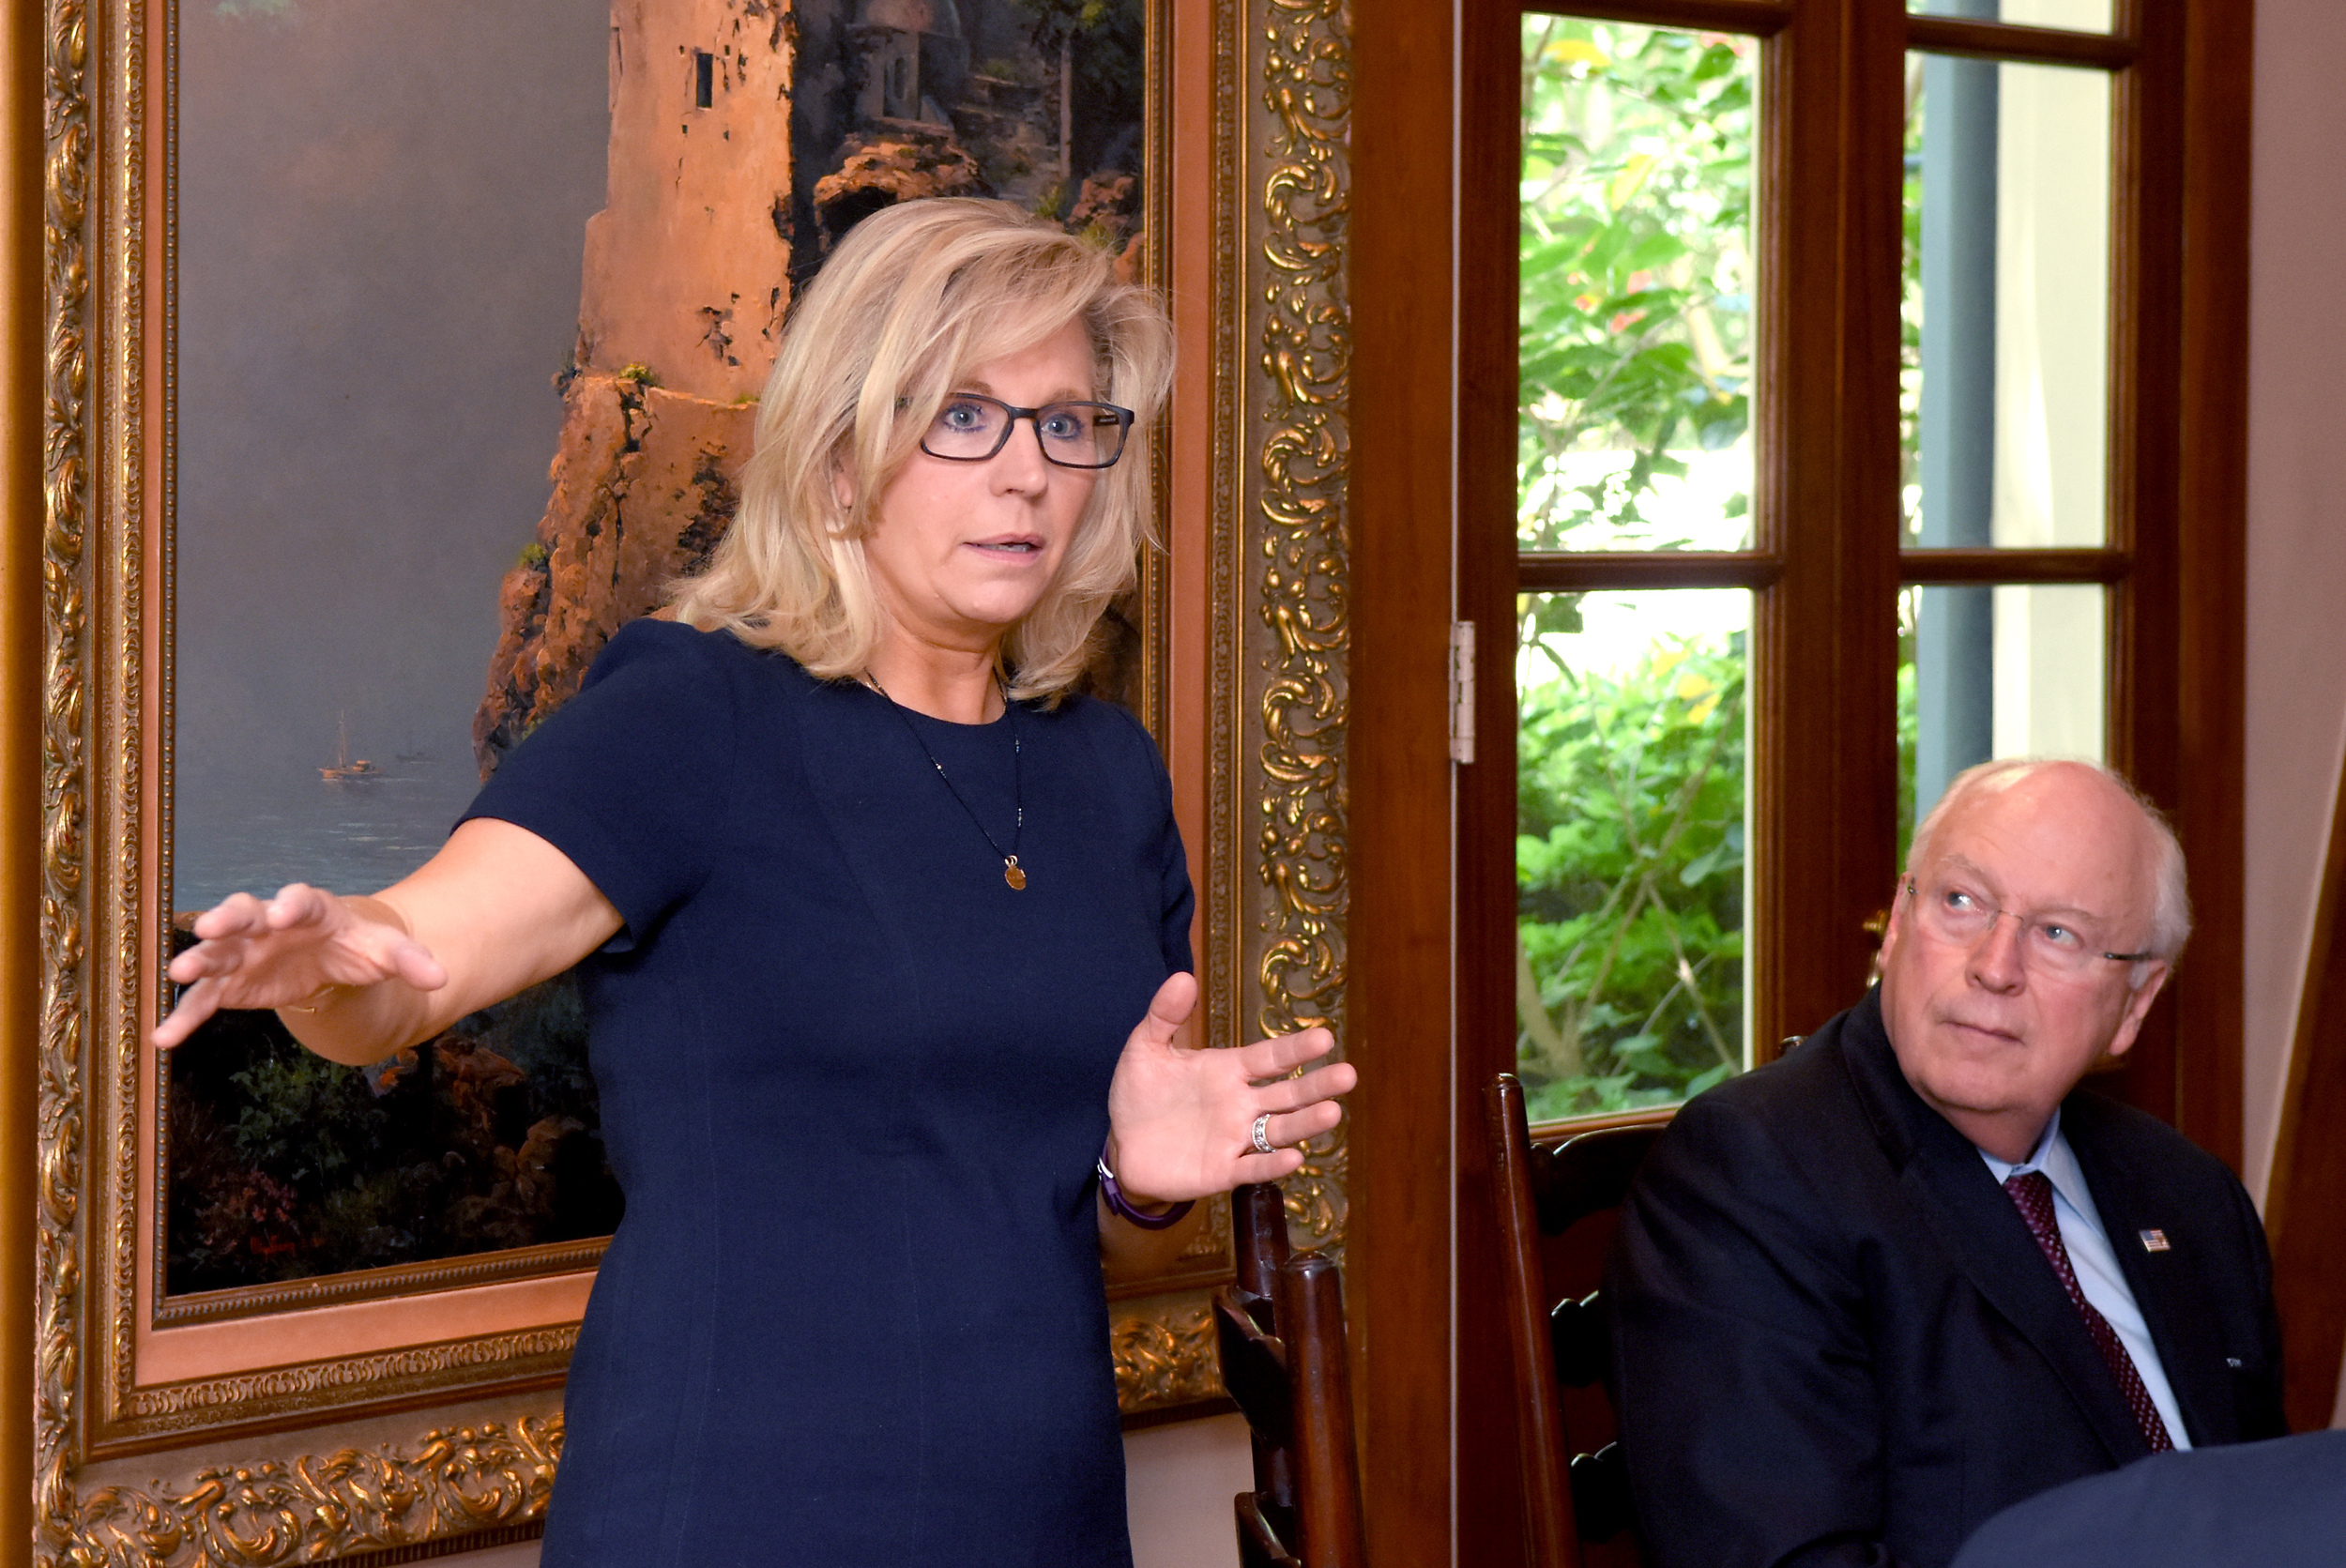 Candidate for Wyoming's At-Large Congressional seat, Liz Cheney speaks to supporters at a San Antonio luncheon while Vice President Dick Cheney looks on in 2016.